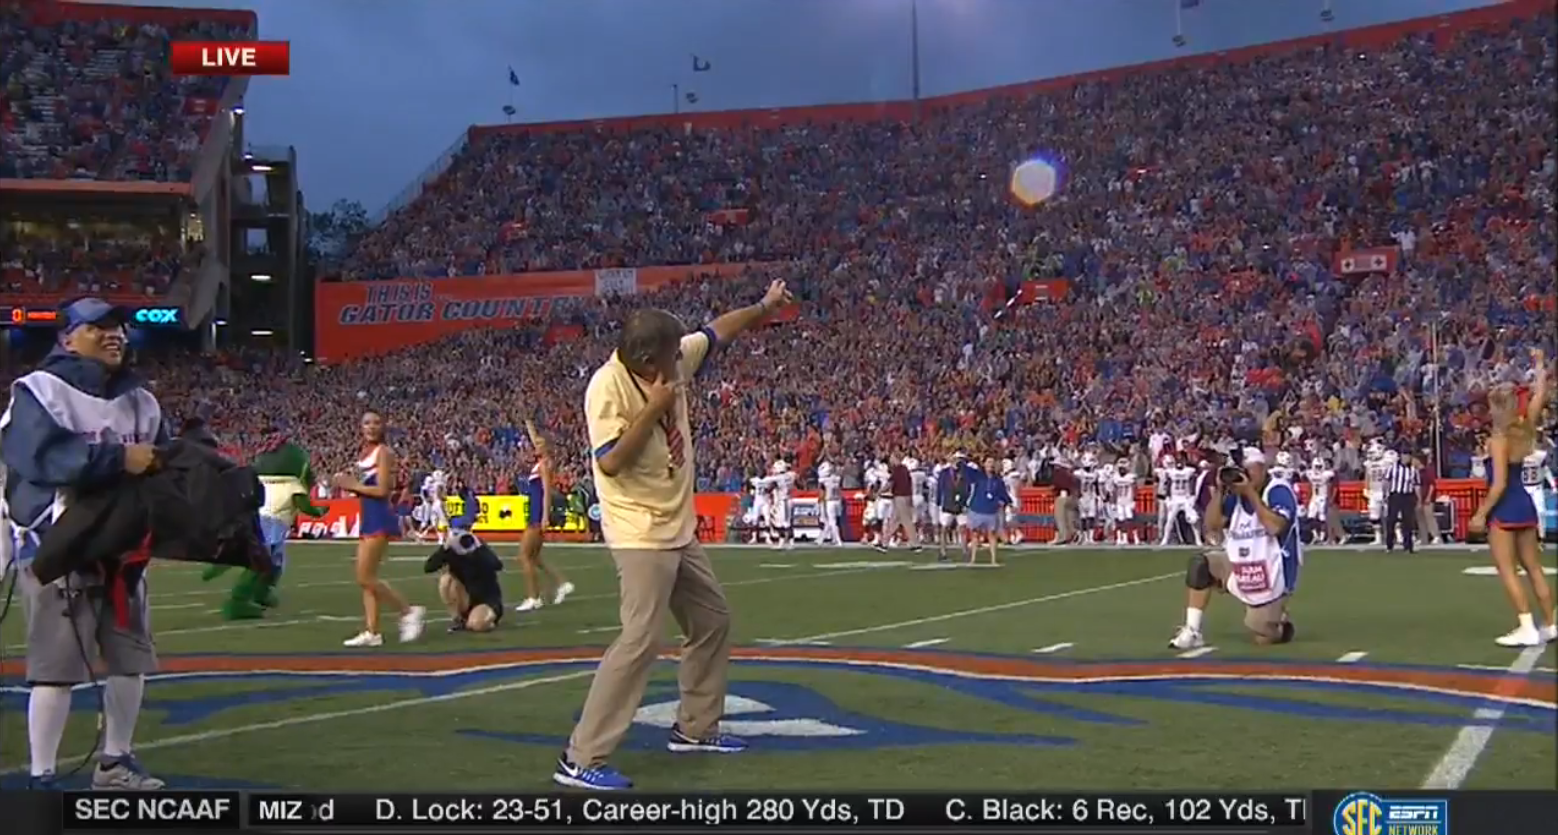 Steve Spurrier did the Usain Bolt point